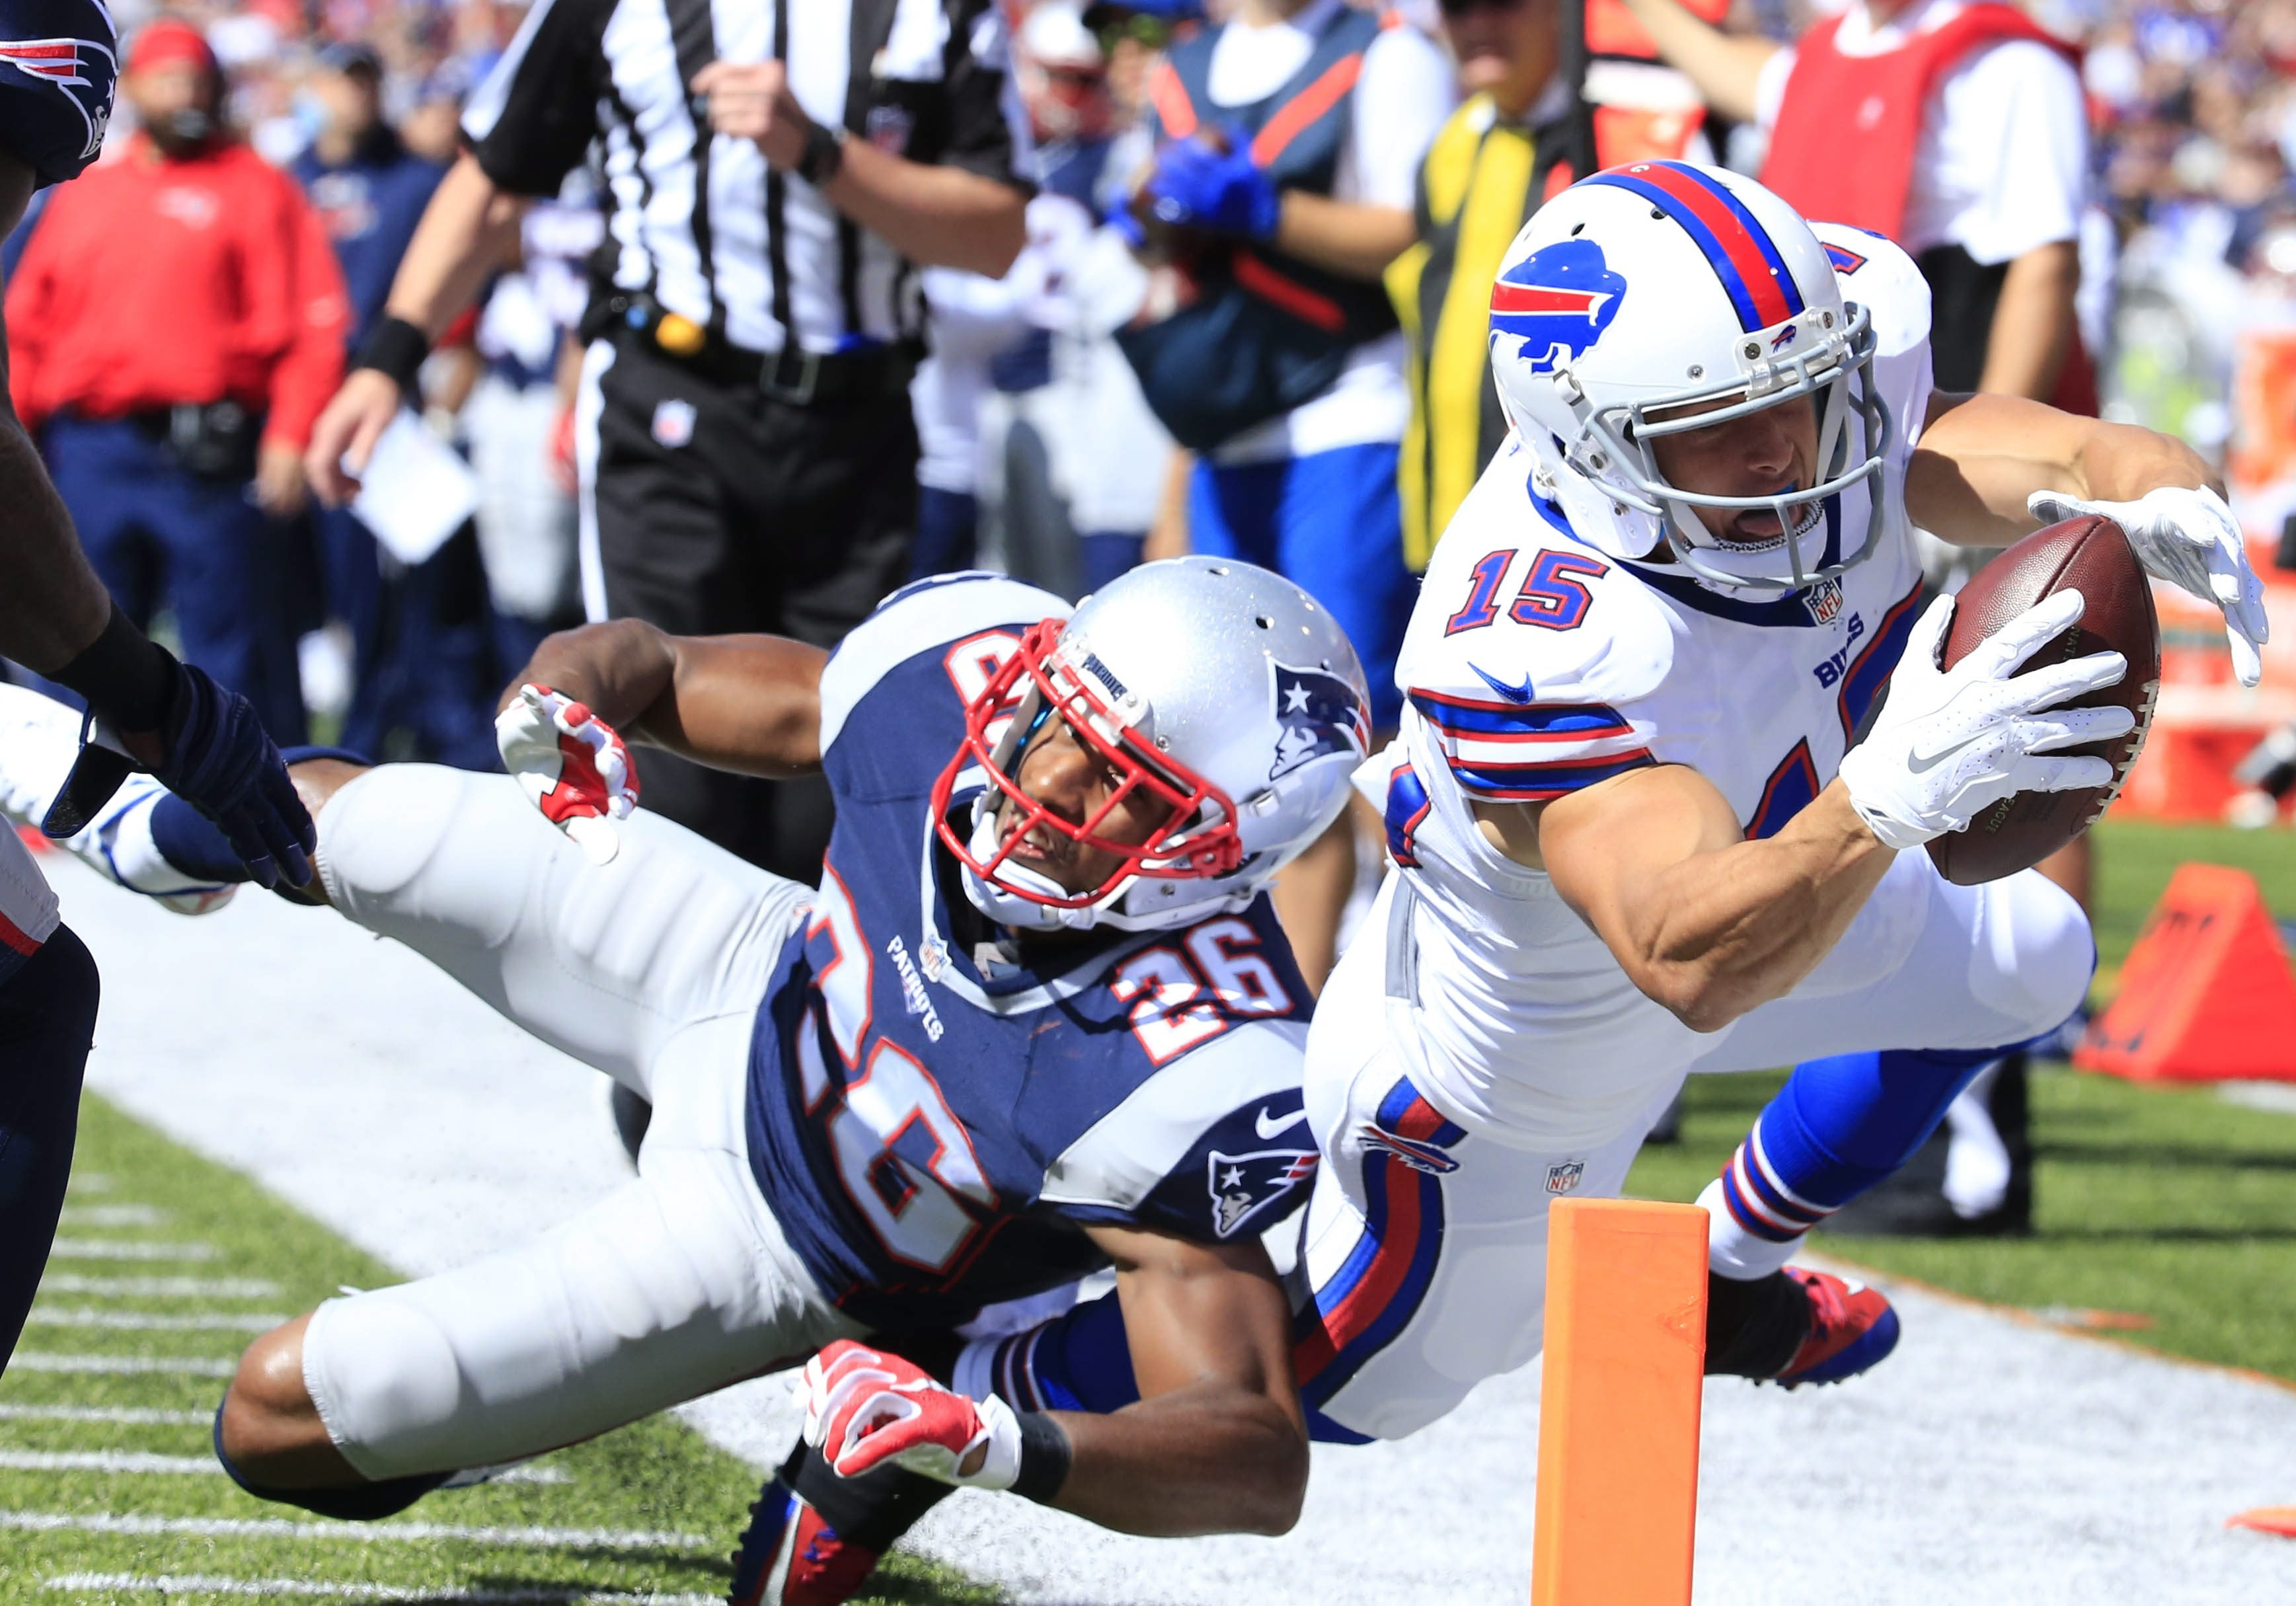 Former Bills receiver Chris Hogan, right, moved over to the Patriots in the offseason, giving New England's offense a new weapon out of the slot. (Harry Scull Jr./Buffalo News file photo)